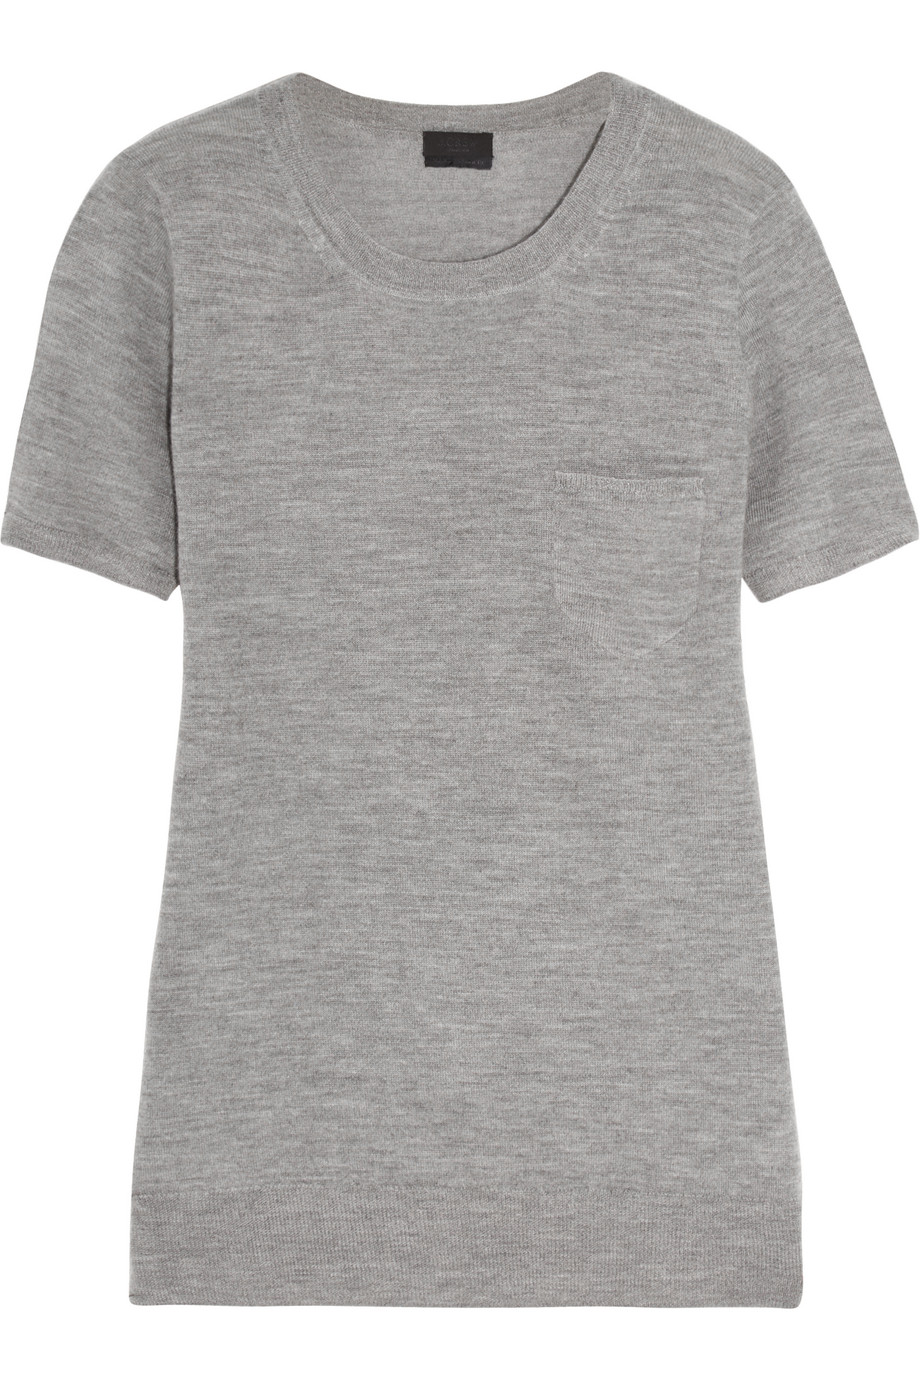 J.Crew Cashmere T-Shirt, Gray, Women's, Size: XS